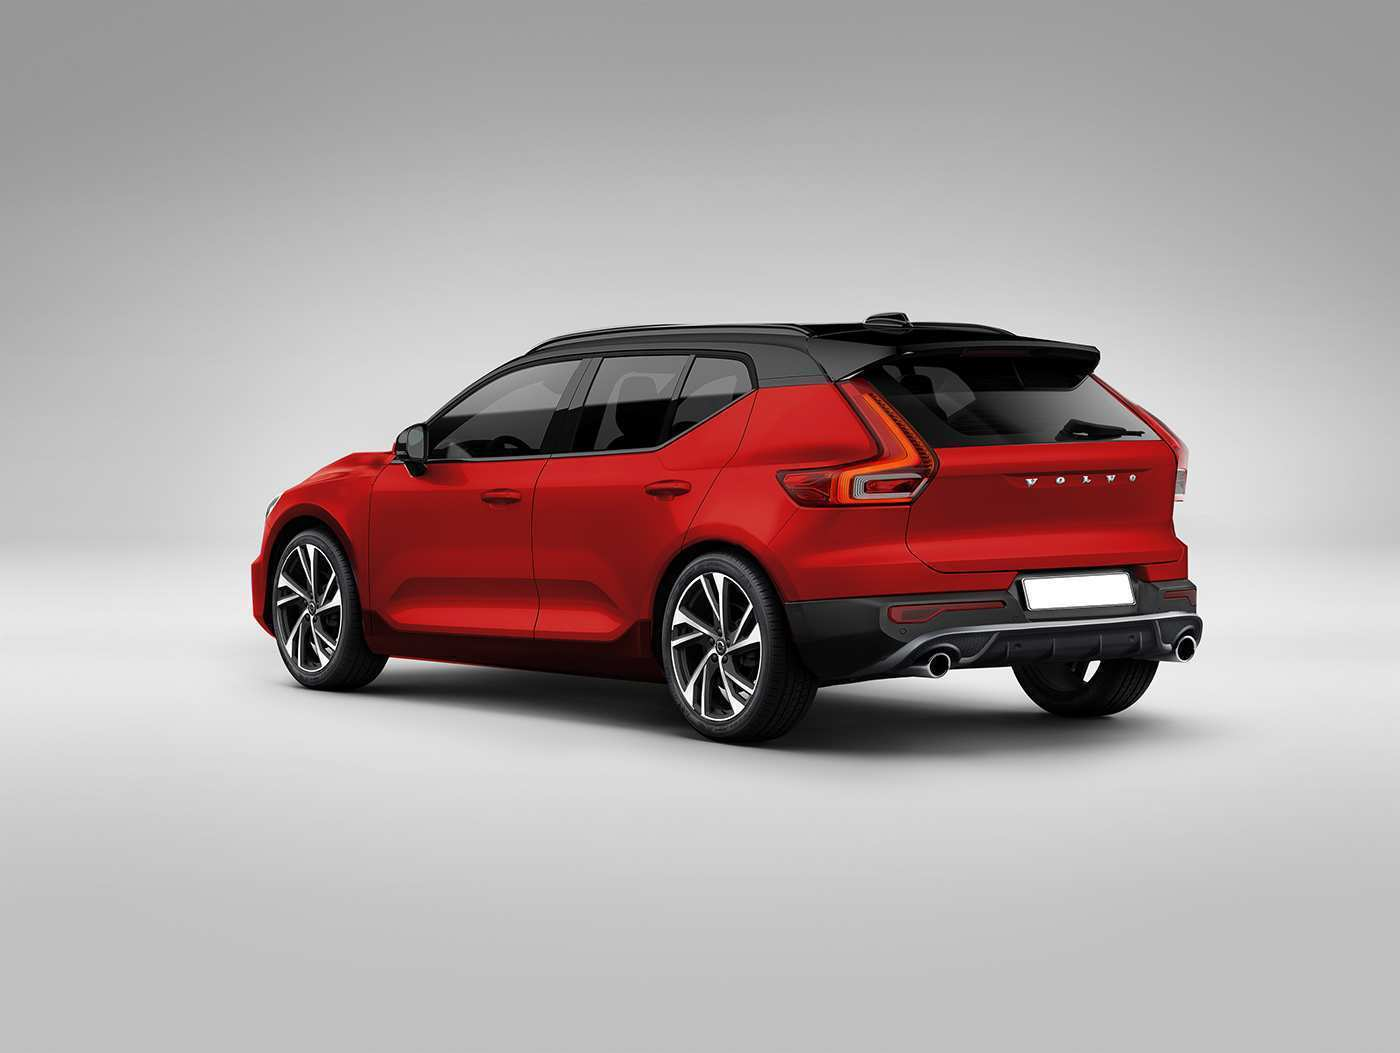 27 All New Volvo News 2019 Exterior And Interior